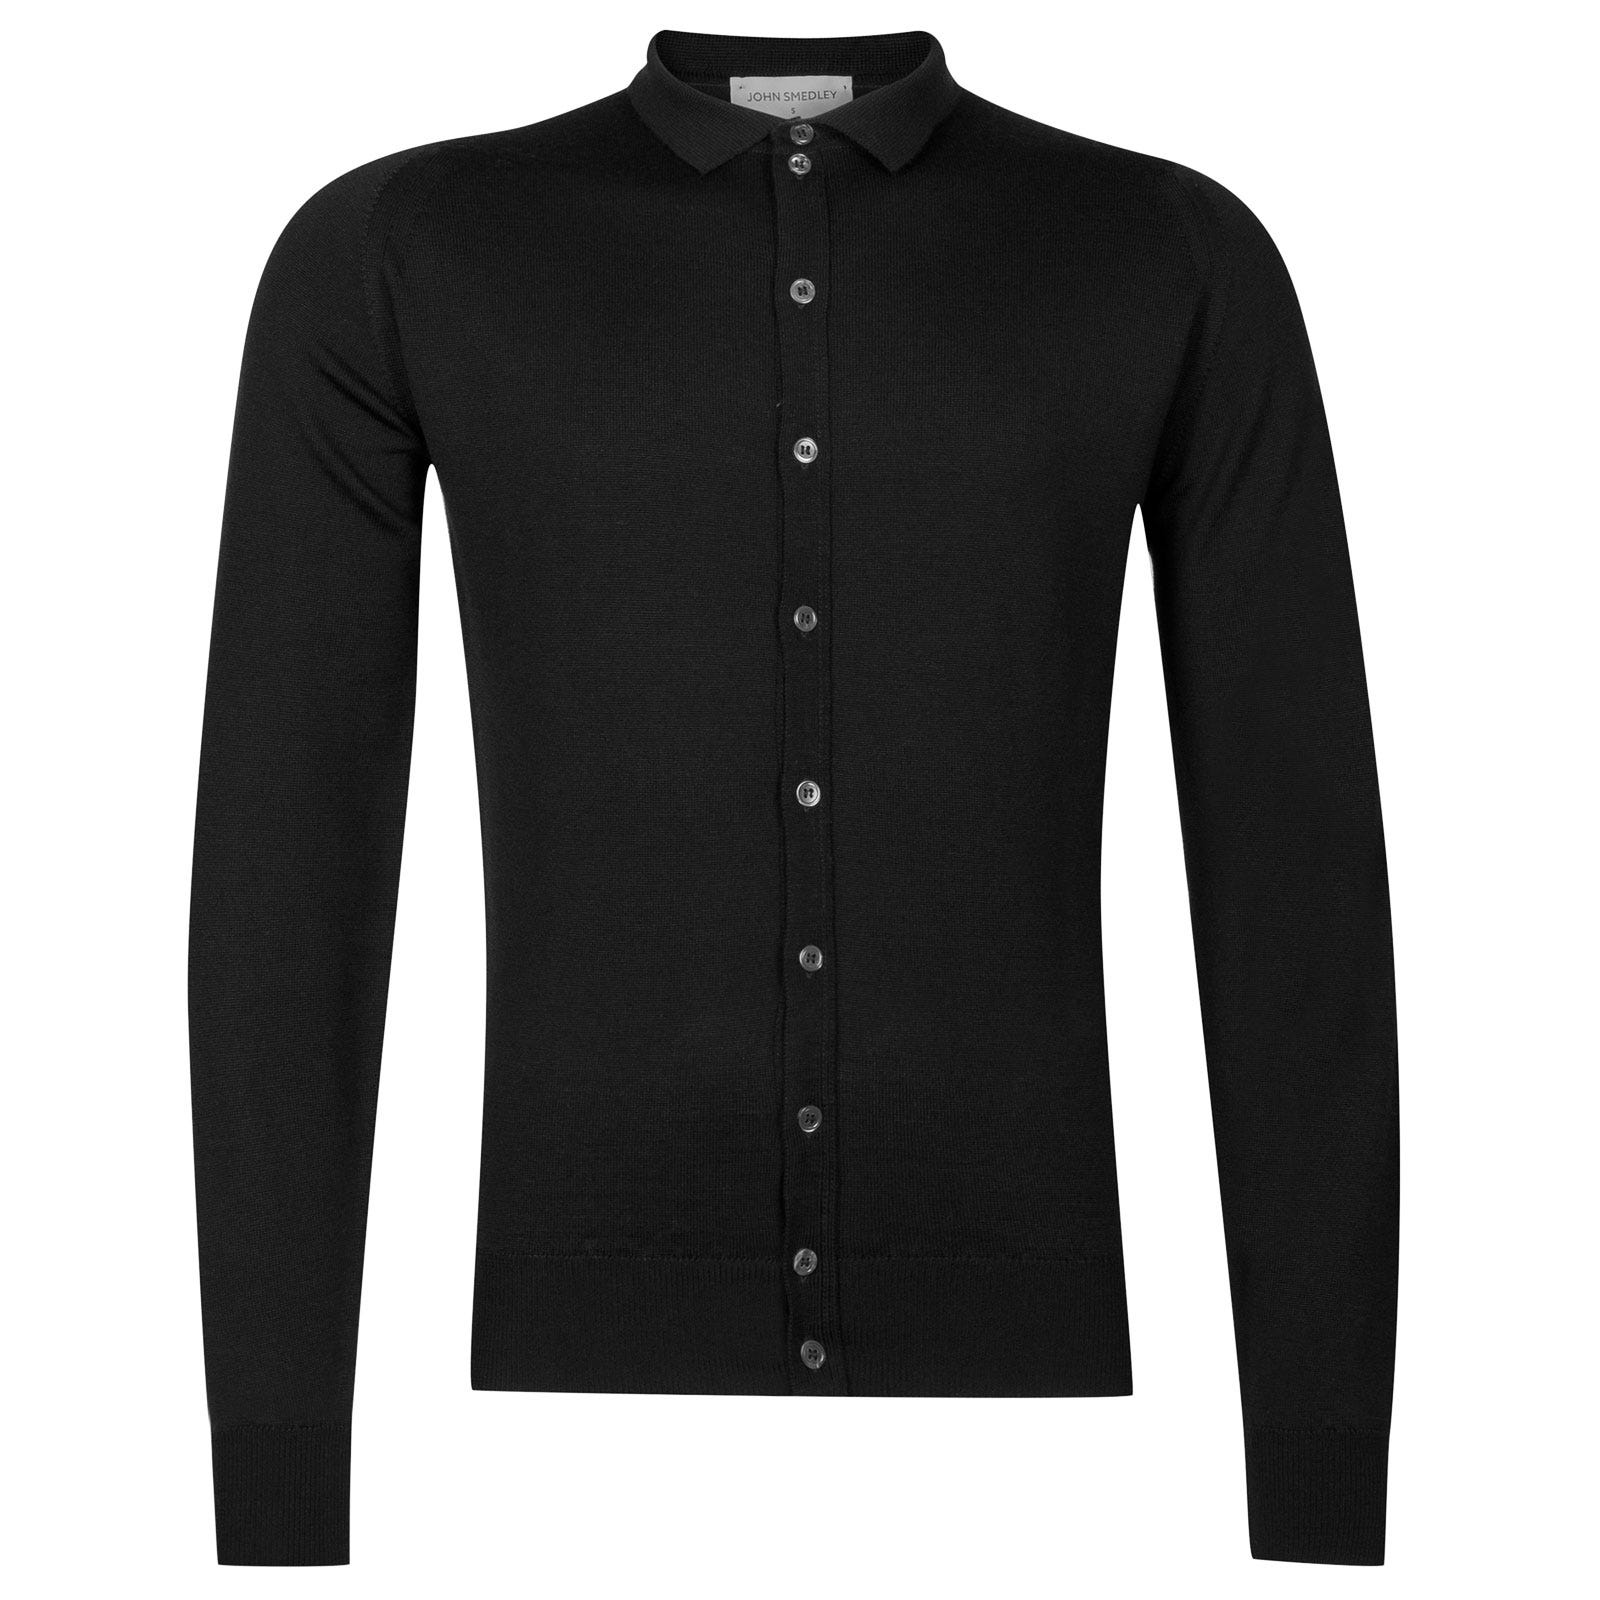 John Smedley Parwish Merino Wool Shirt in Black-XXL